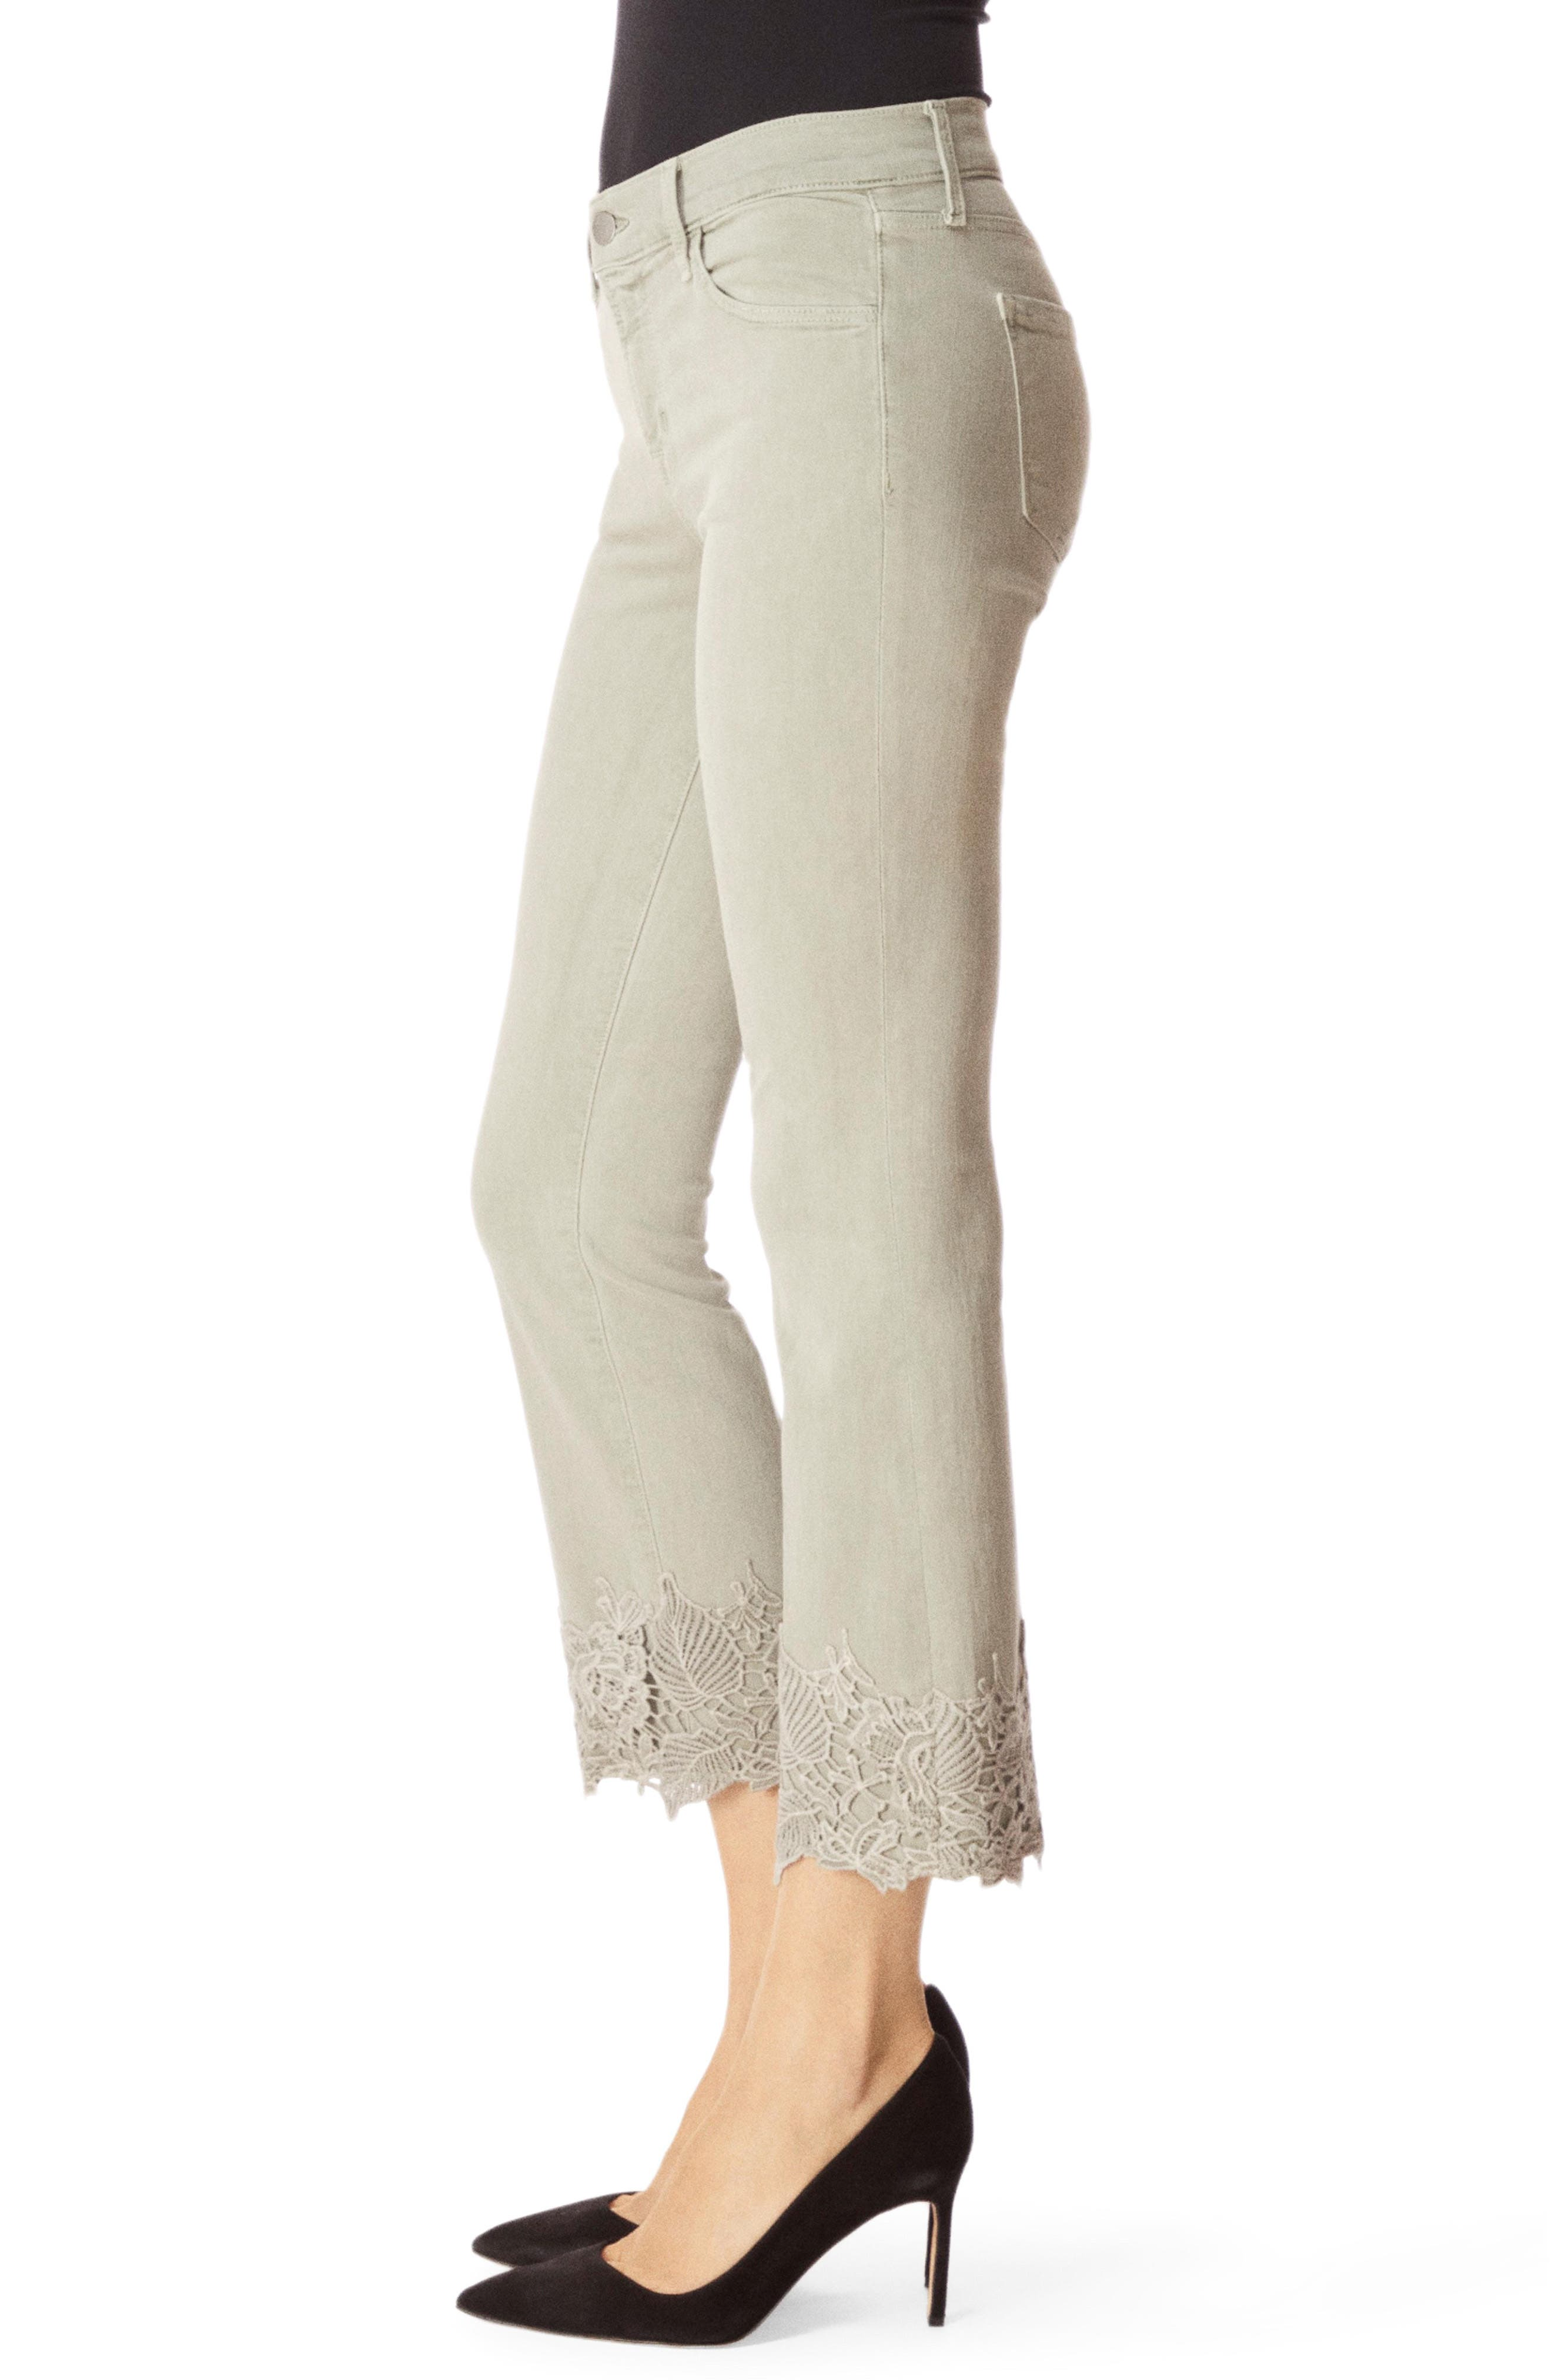 J BRAND,                             Selena Crop Bootcut Jeans,                             Alternate thumbnail 3, color,                             FADED GIBSON